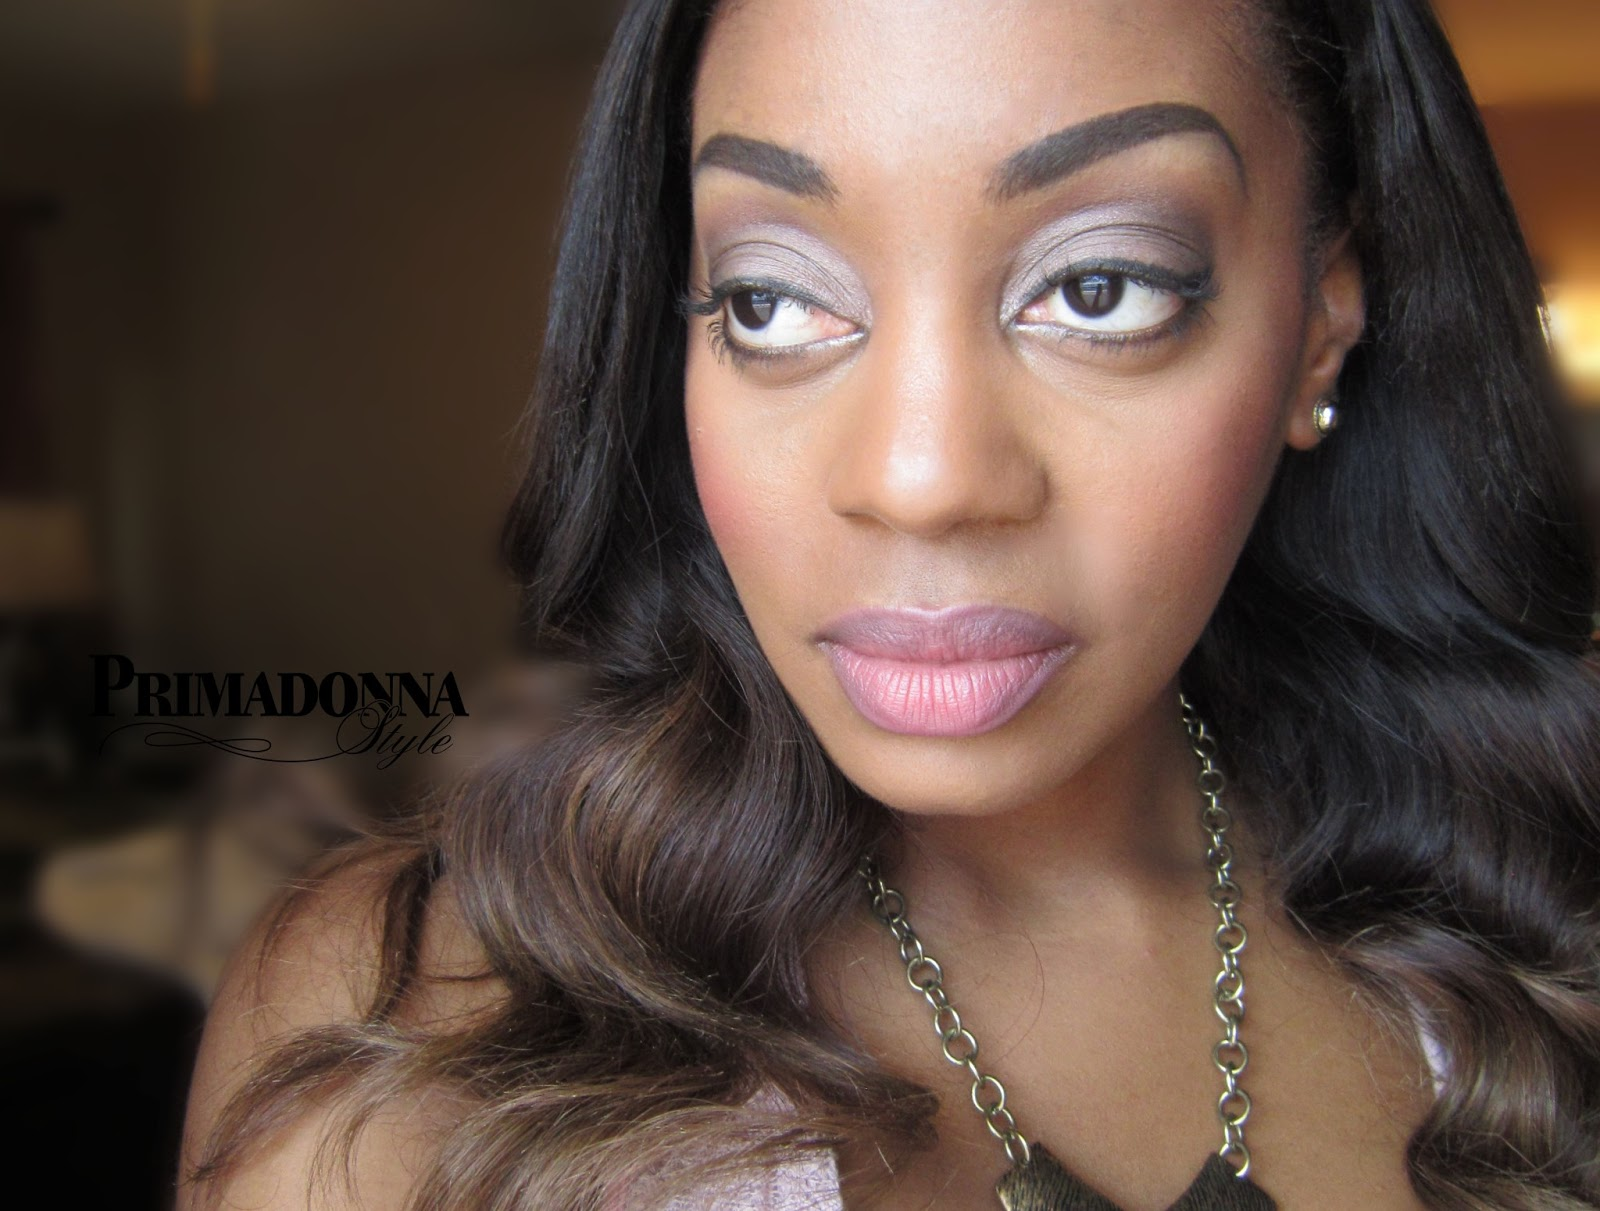 Primadonna Style Get The Look Makeup Edition Naked Nude